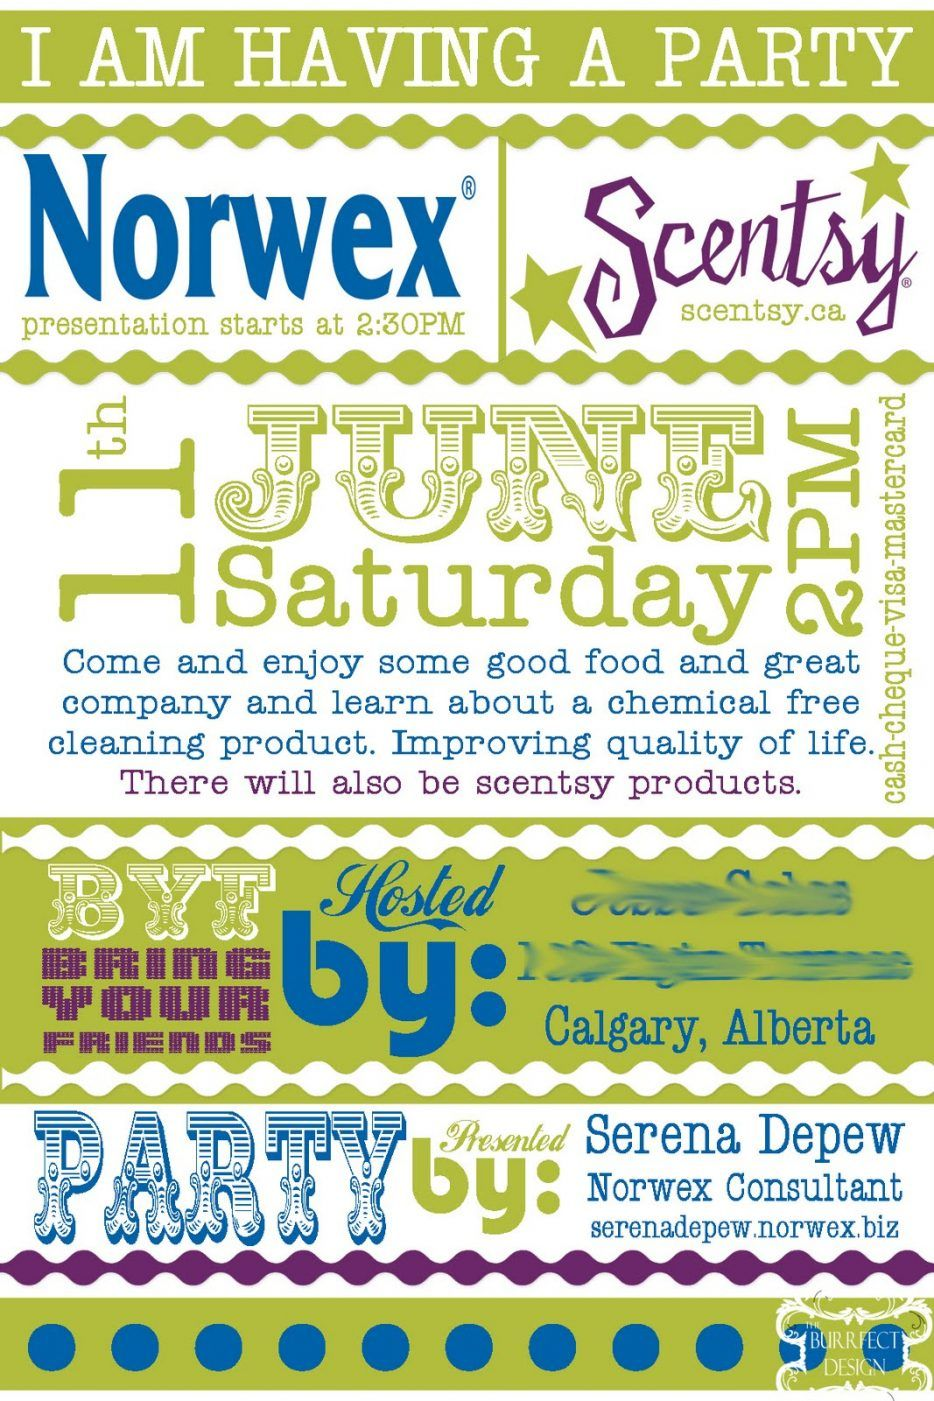 Party Invitations Norwex Handmade Cards Design Hand Made Craft